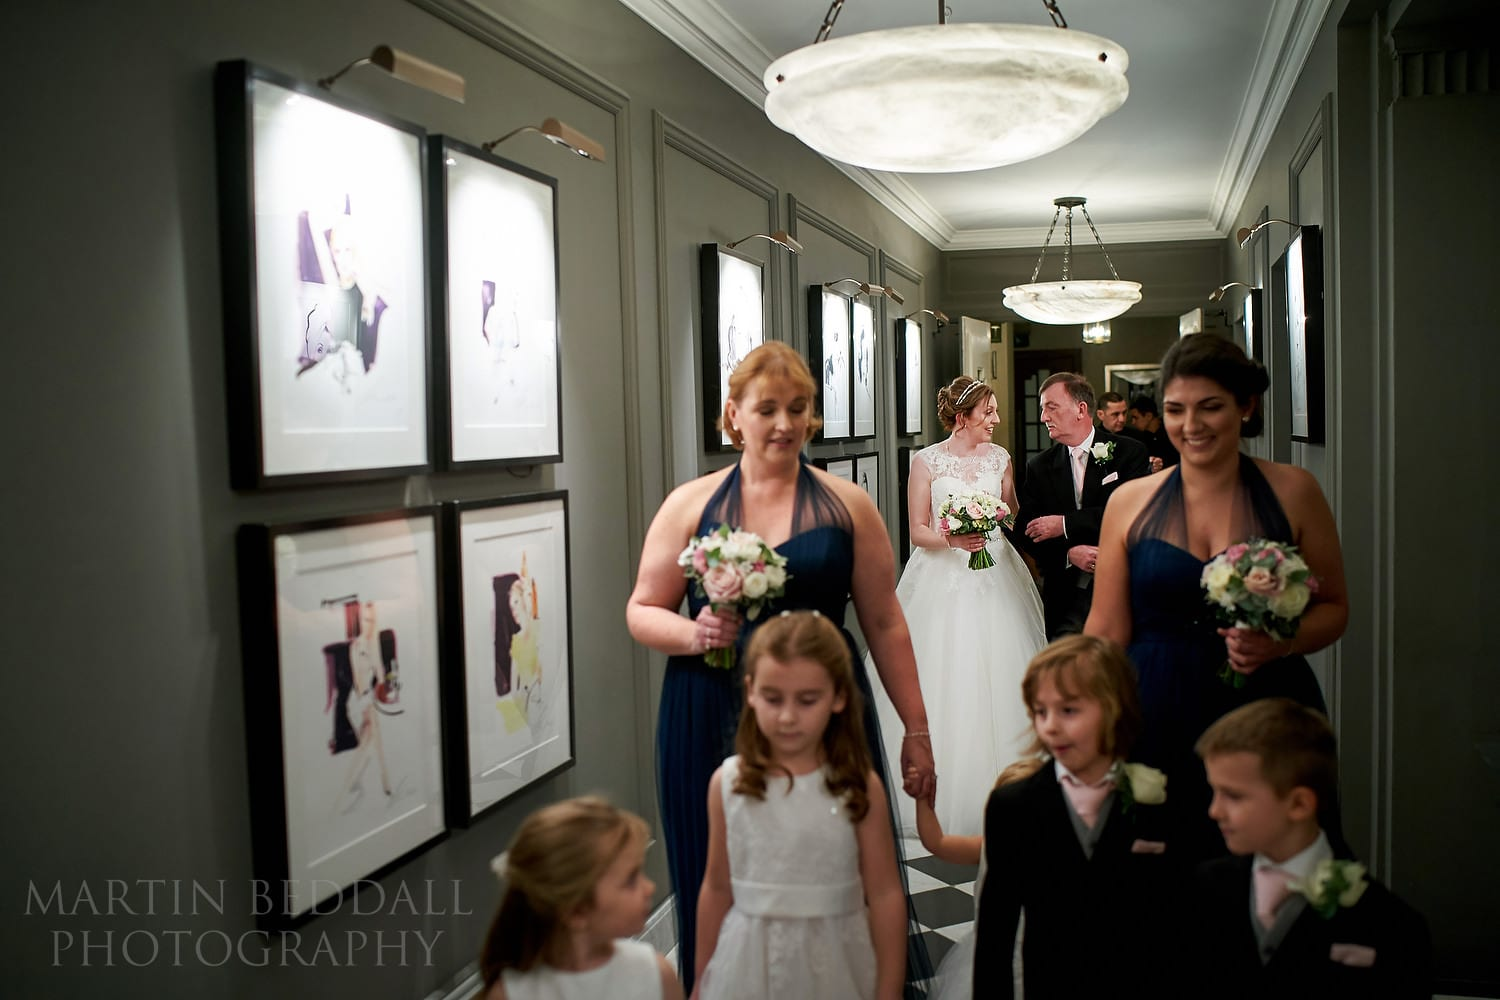 Bridal party heading to the ceremony at Claridges wedding